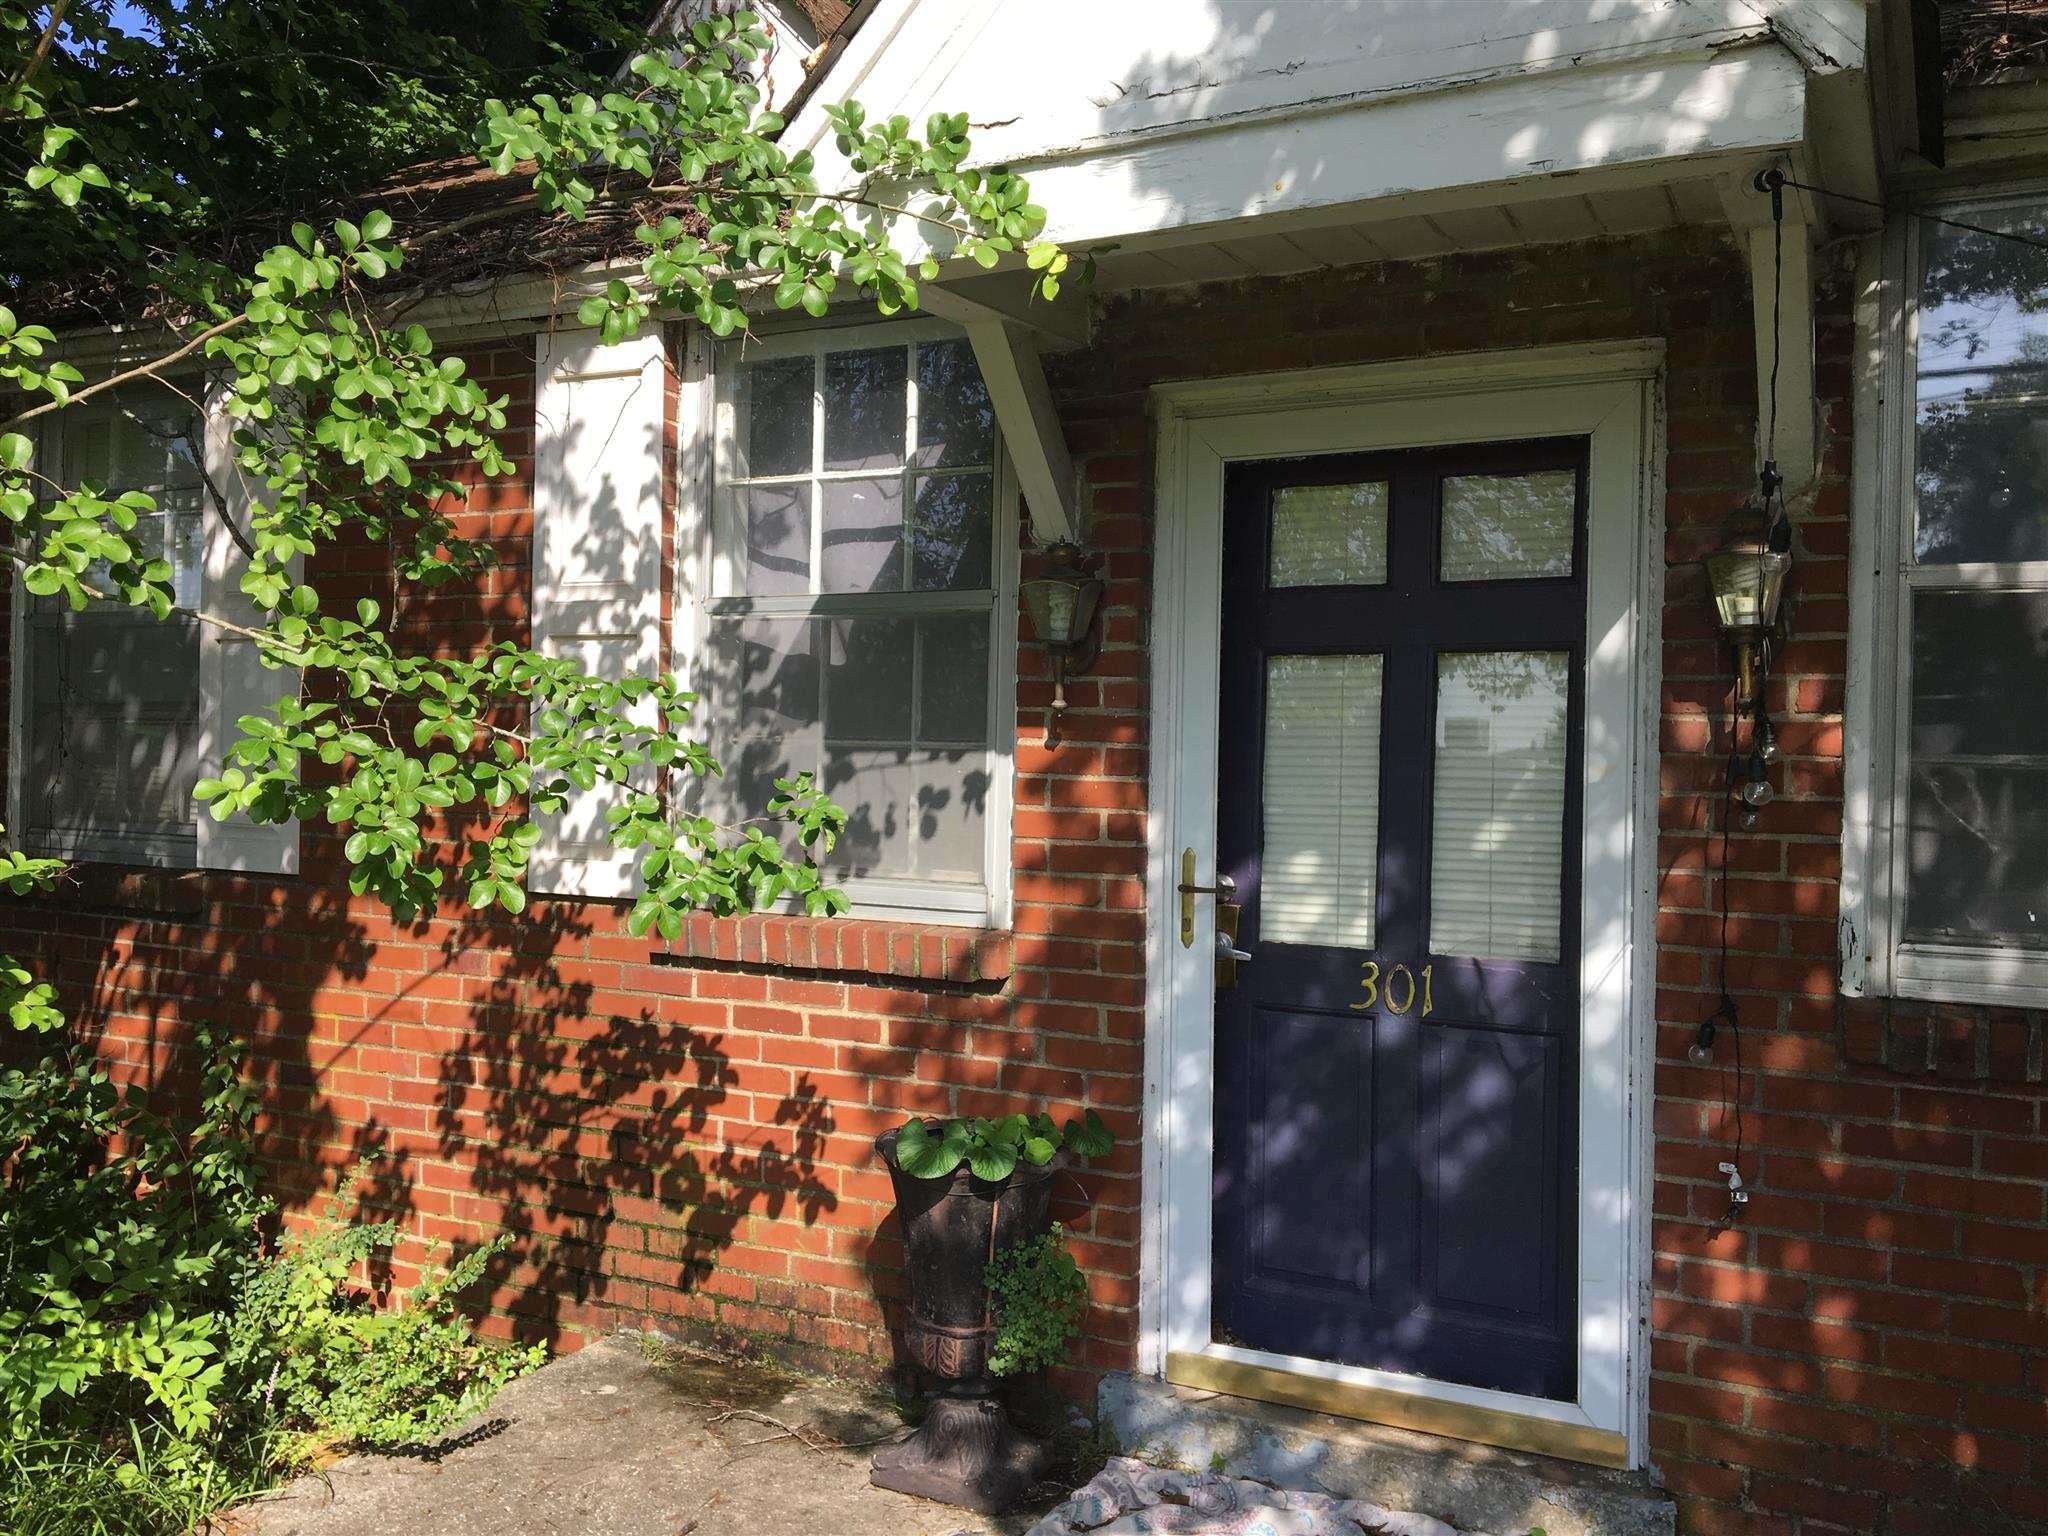 301 Franklin Rd, Franklin, TN 37069 - Franklin, TN real estate listing